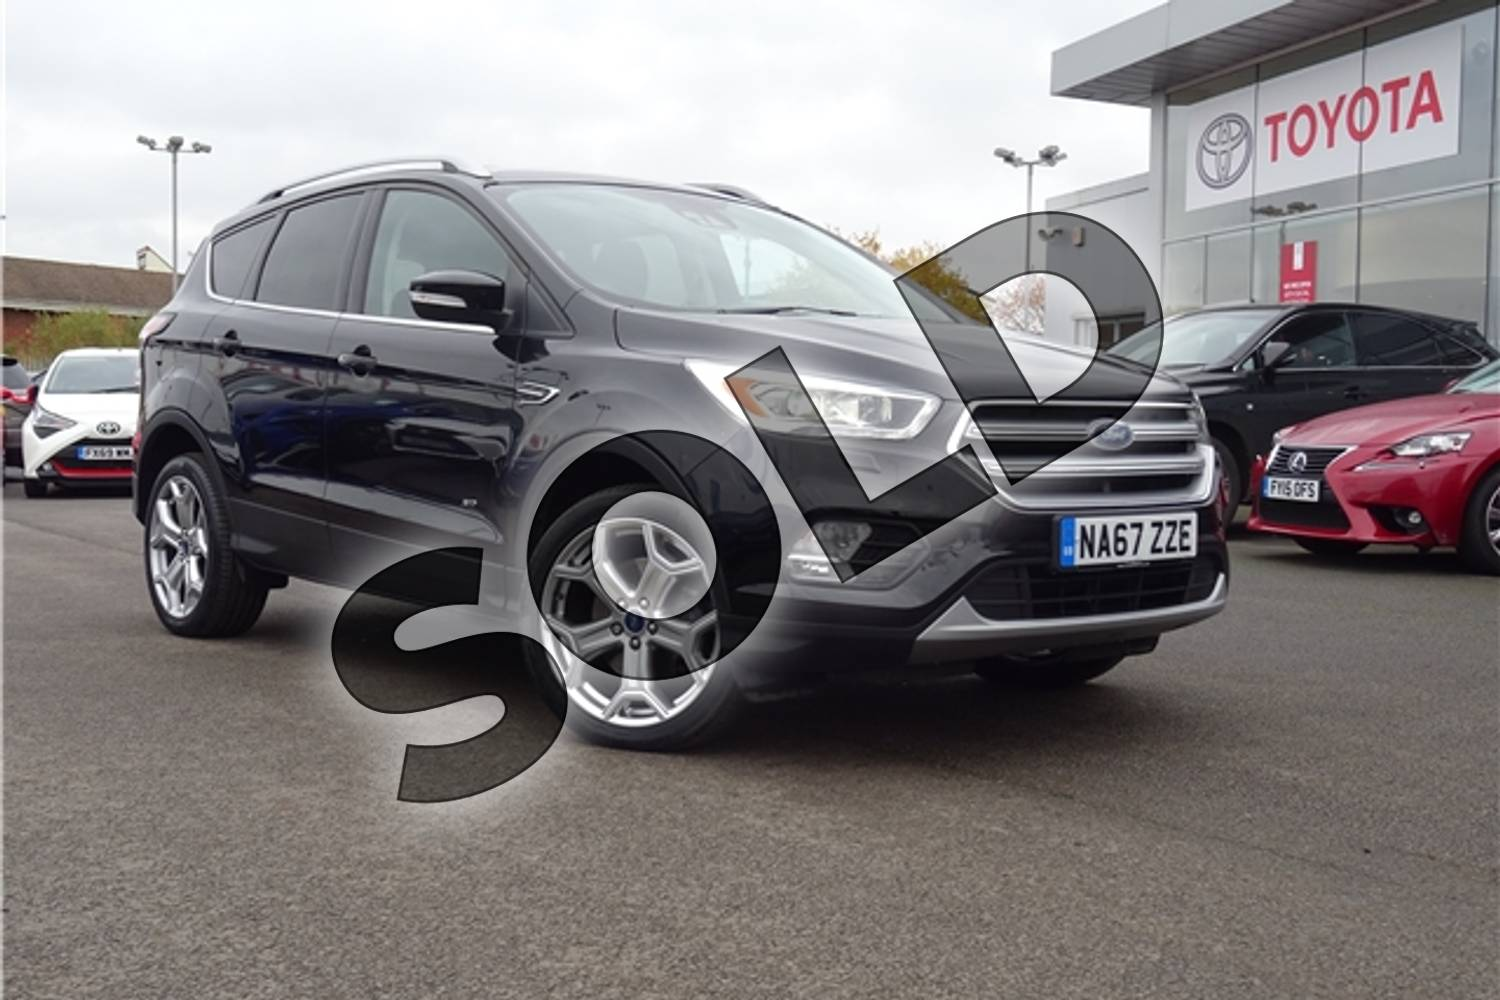 2018 Ford Kuga Diesel Estate 2.0 TDCi 180 Titanium X 5dr Auto in Metallic - Shadow black at Listers Toyota Grantham